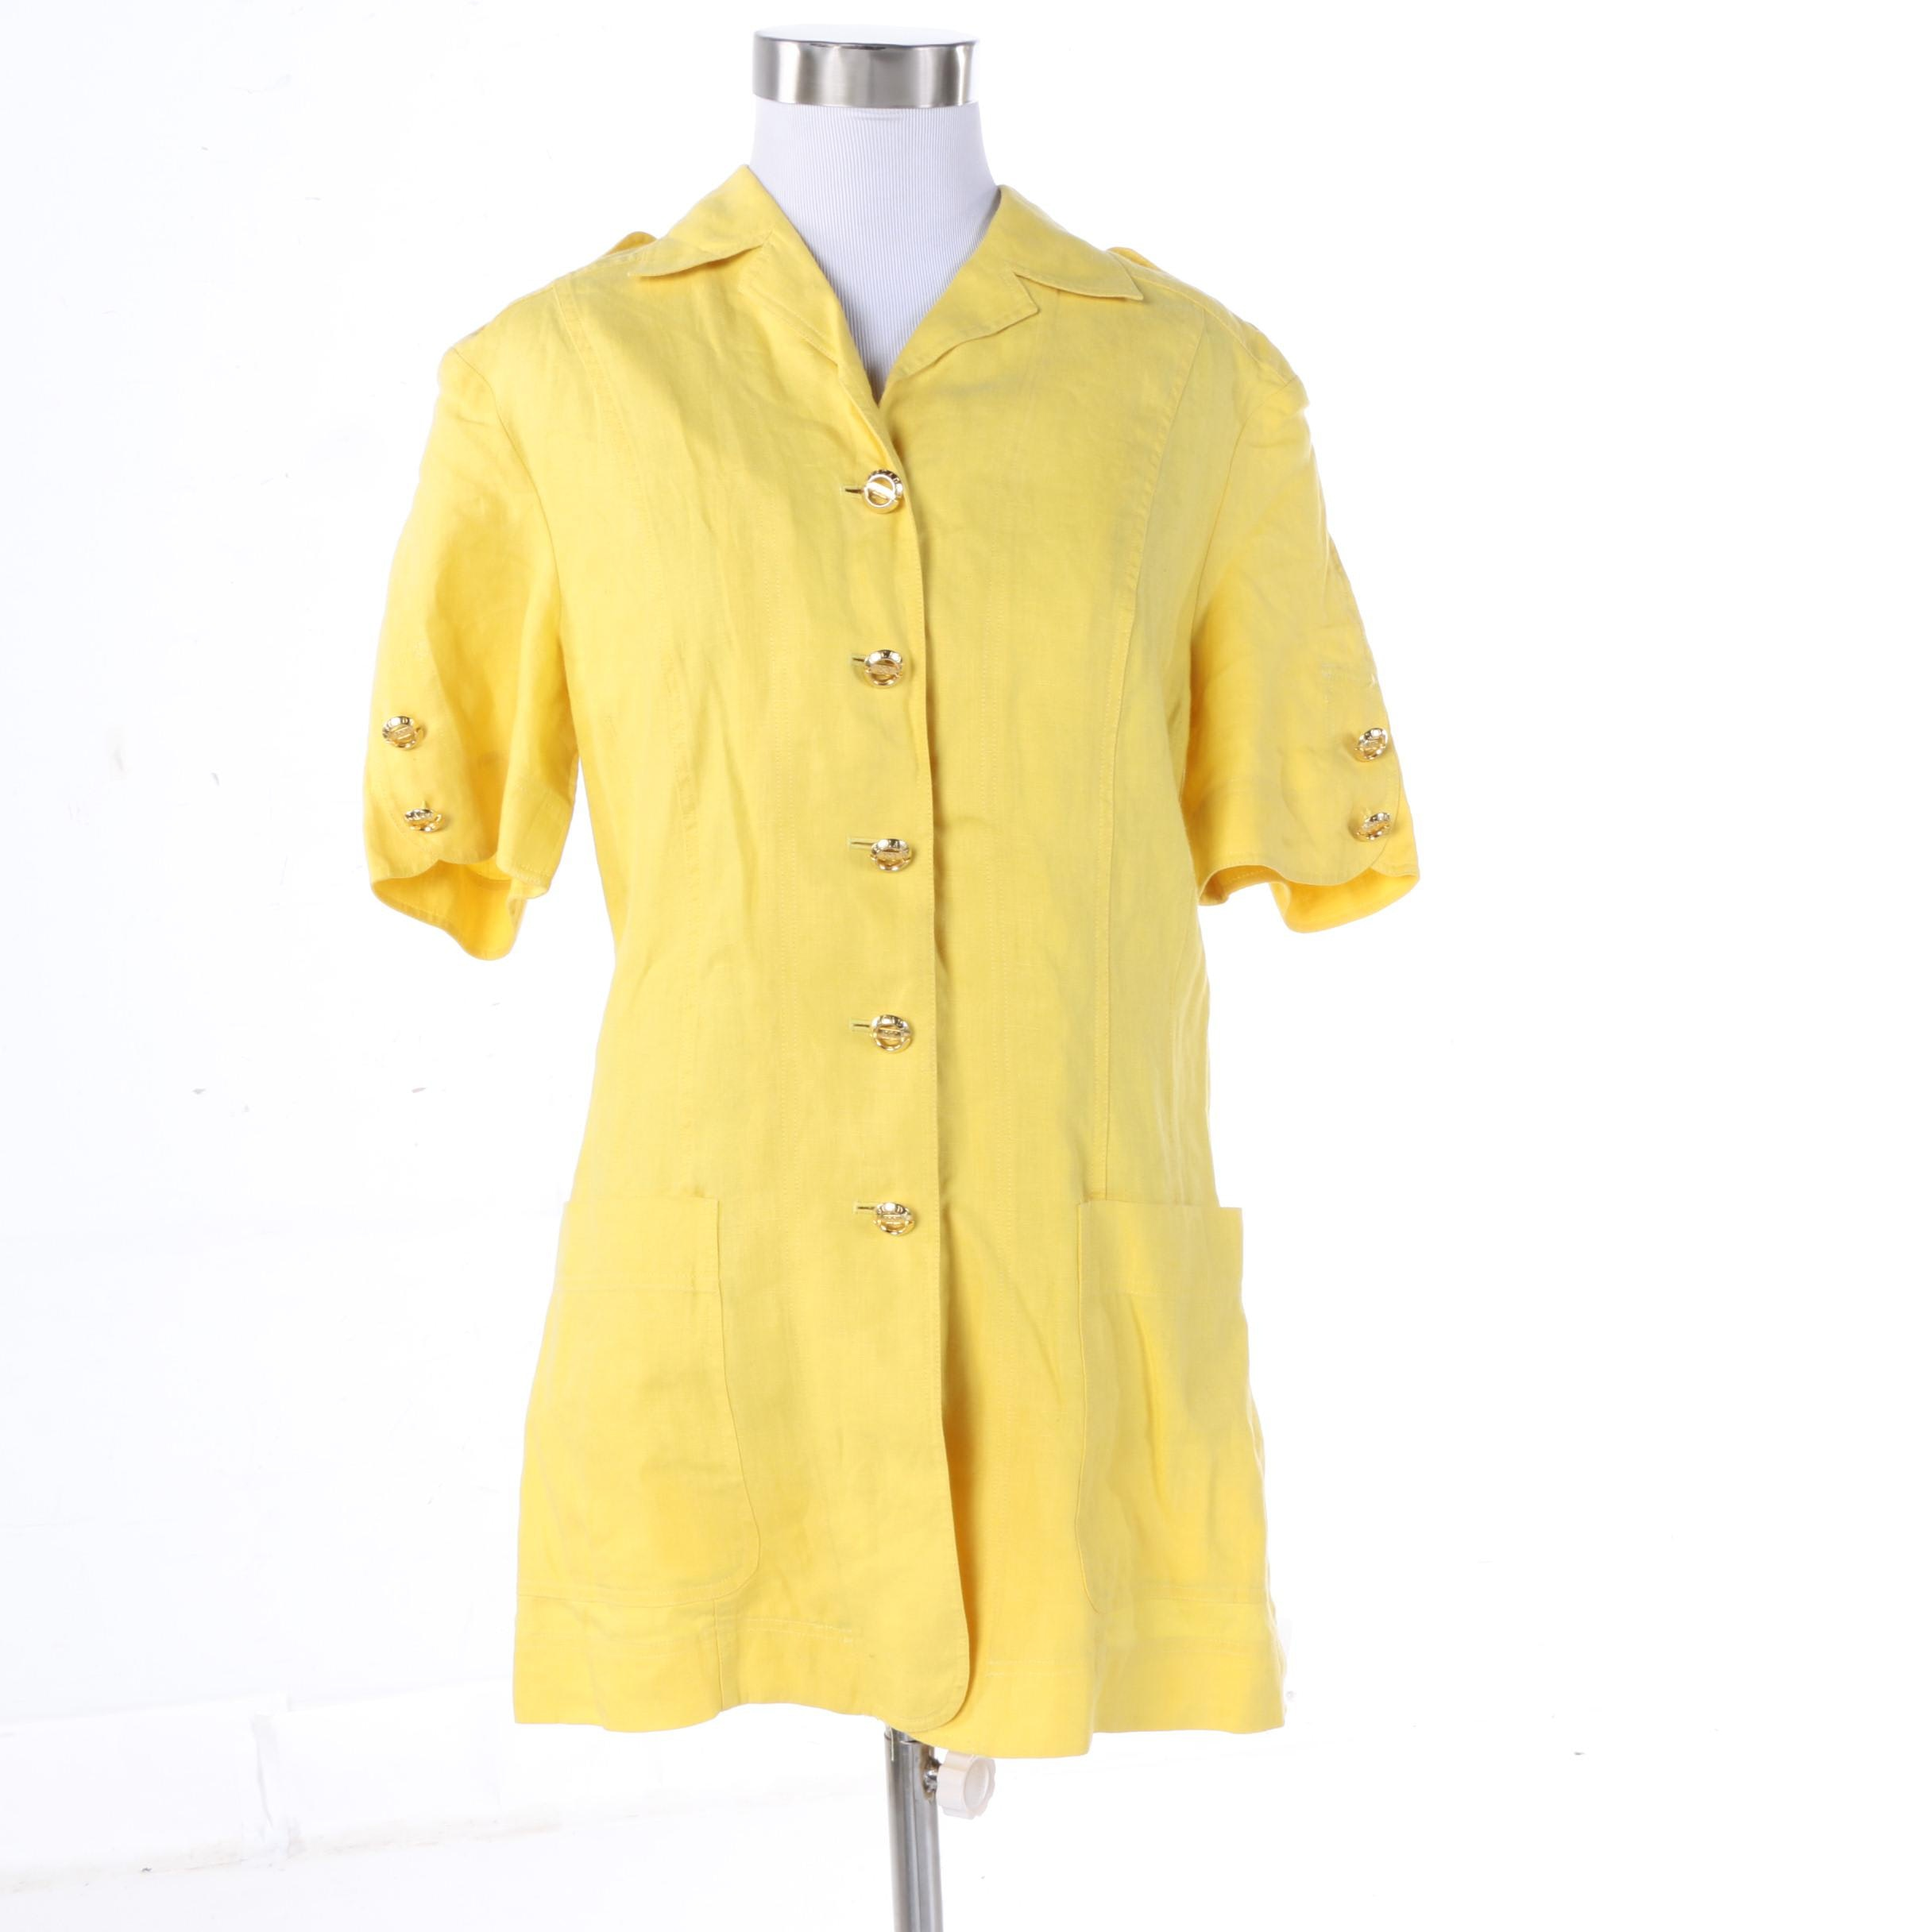 Vintage Escada Margaretha Ley Yellow Linen Short Sleeve Jacket